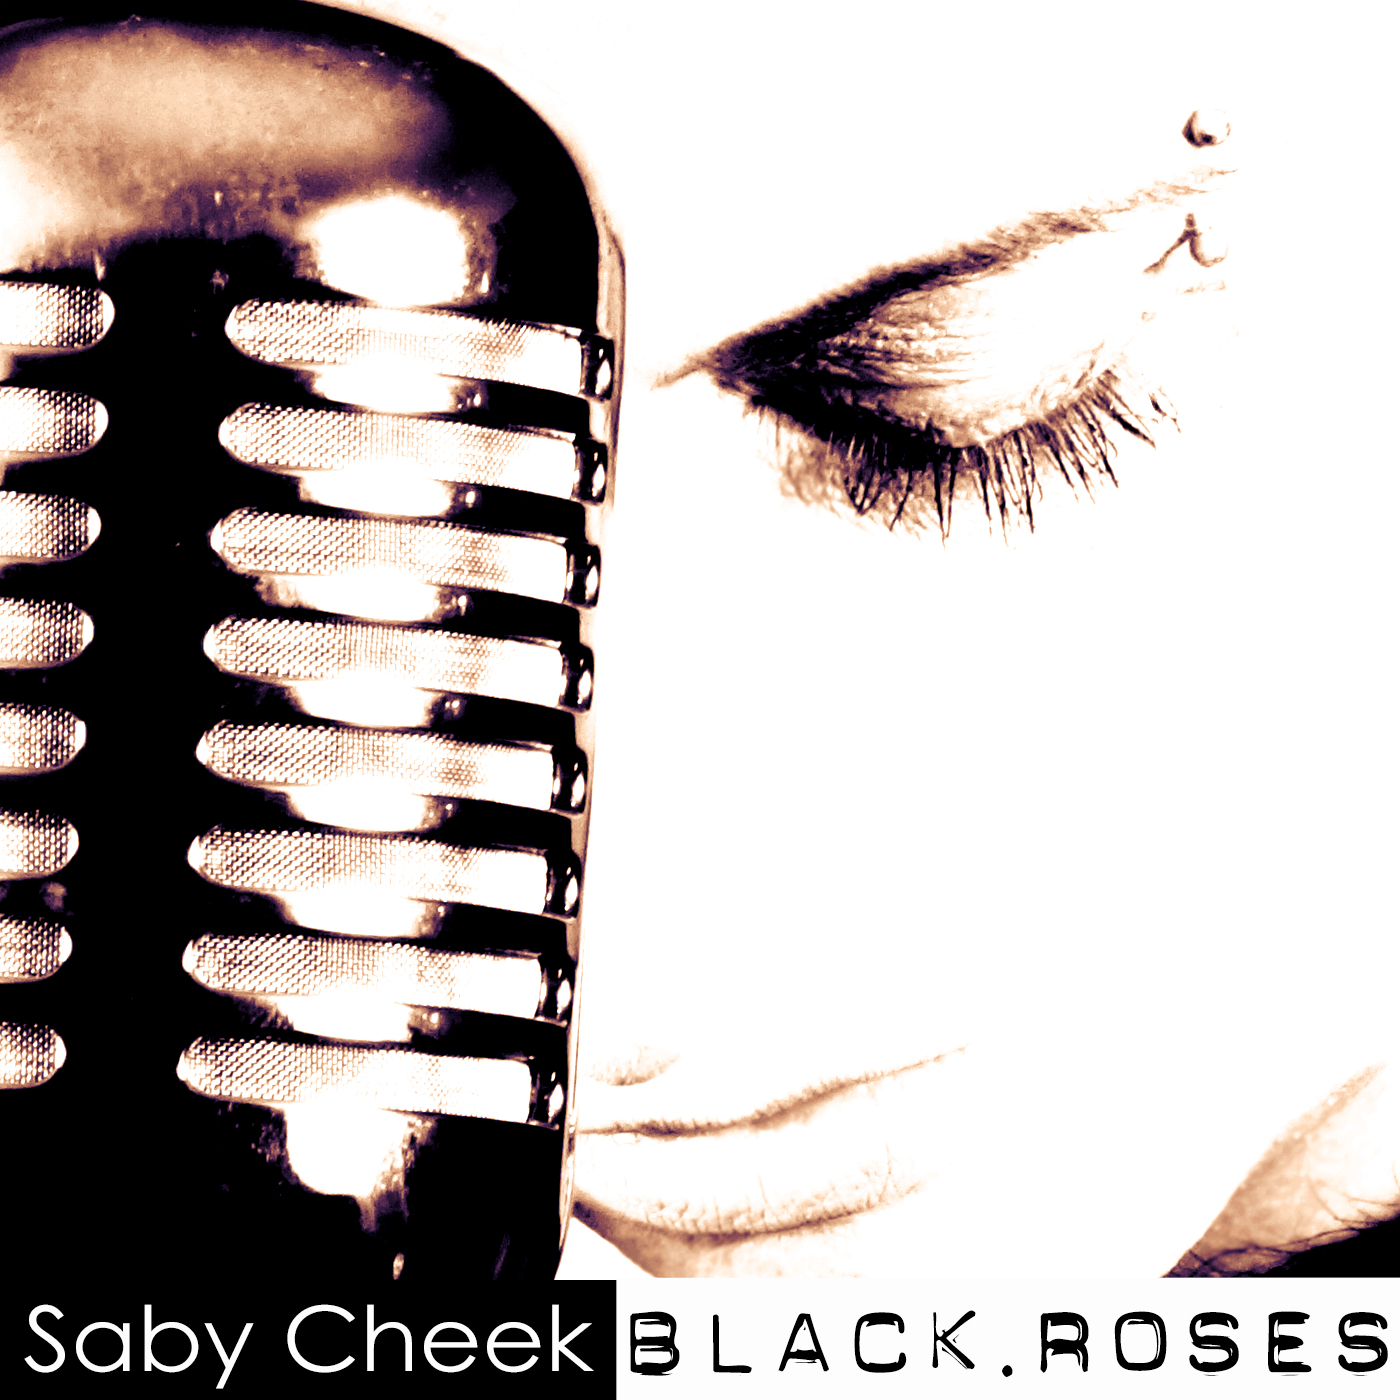 Black Roses by Saby Cheek